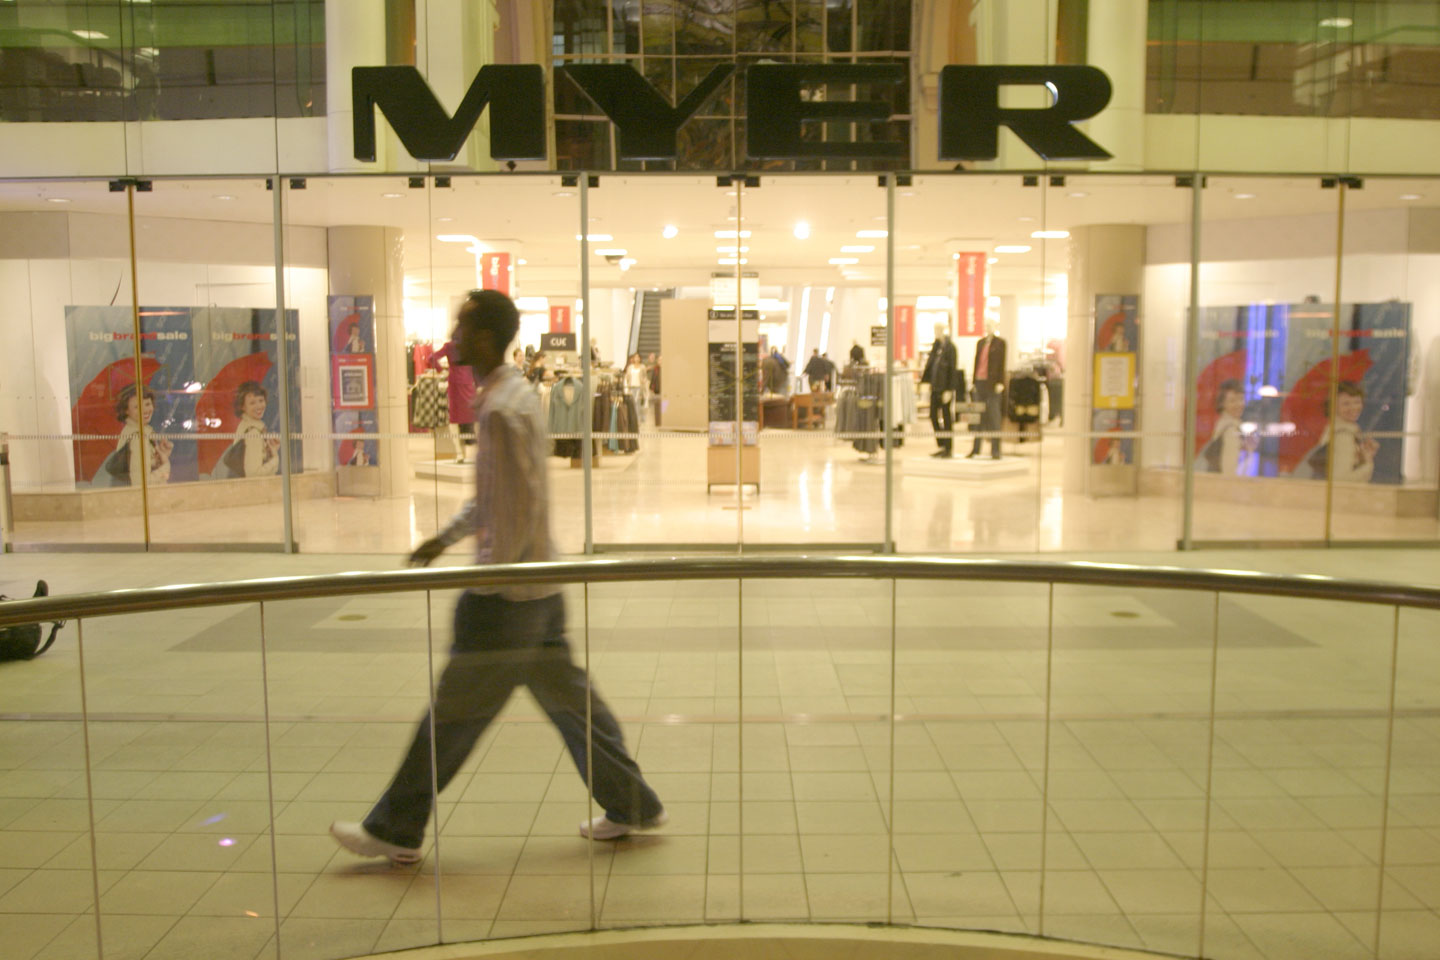 More bad news for Myer as warm weather freezes sales